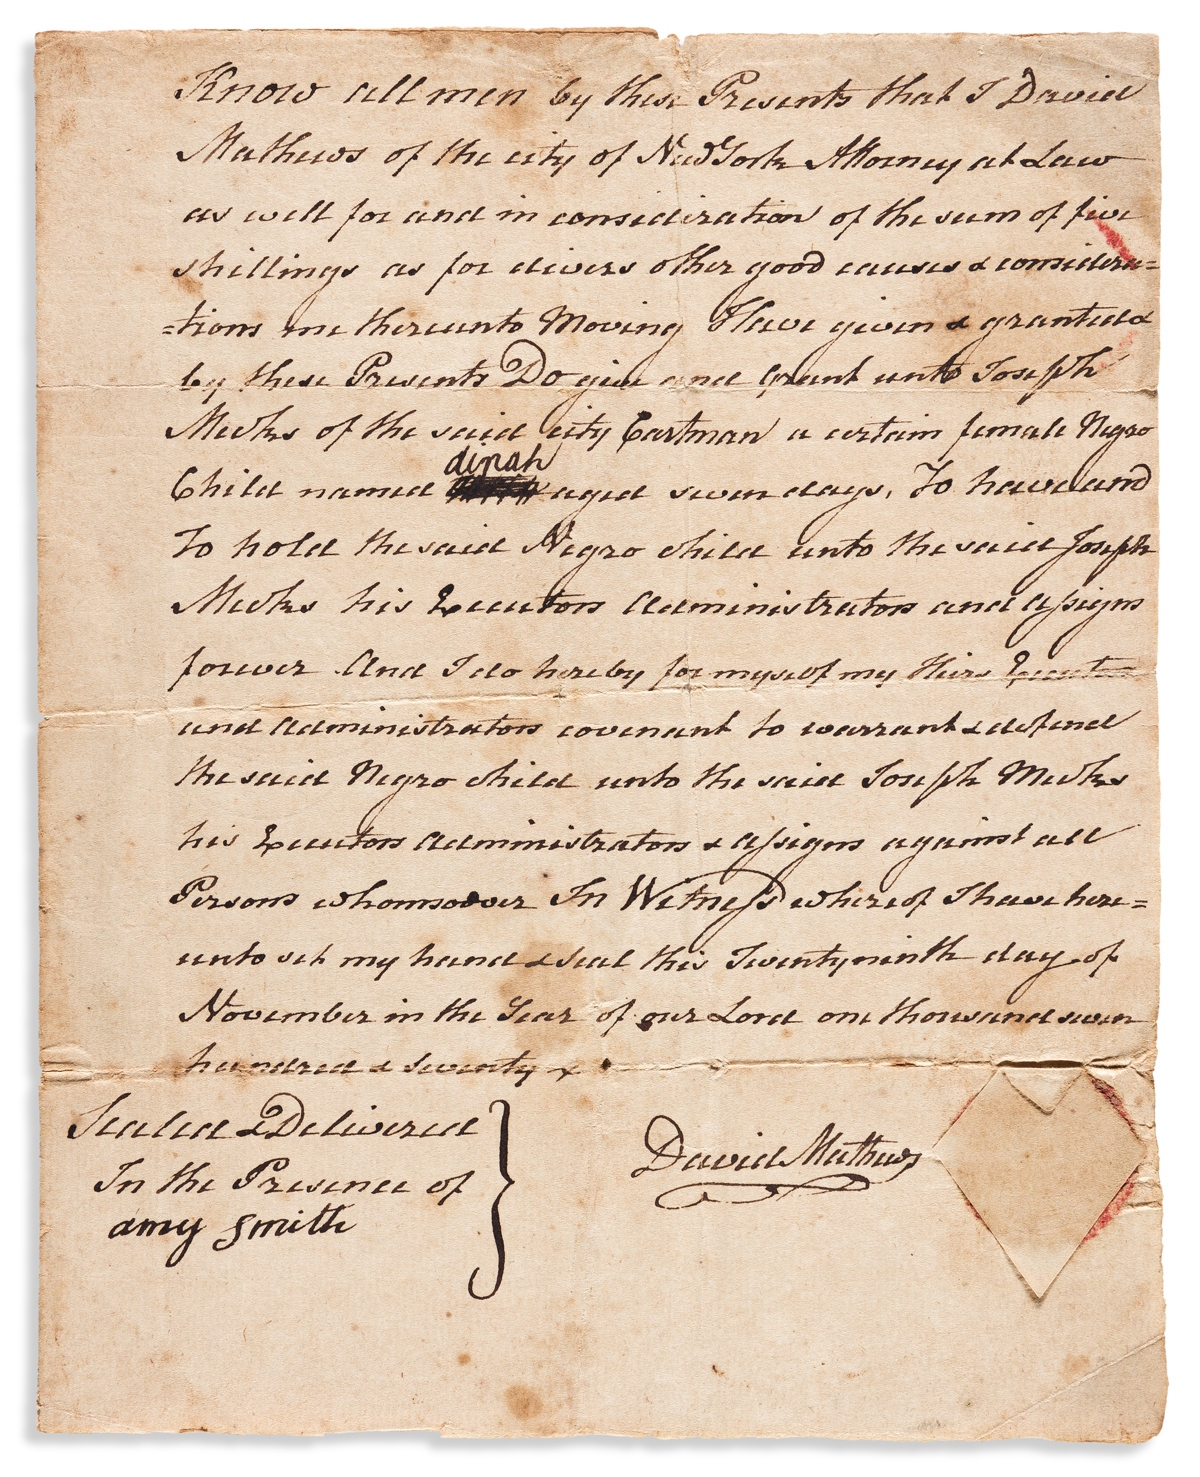 (SLAVERY AND ABOLITION.) David Mathews. Deed of a newborn girl sold by the future mayor of New York.